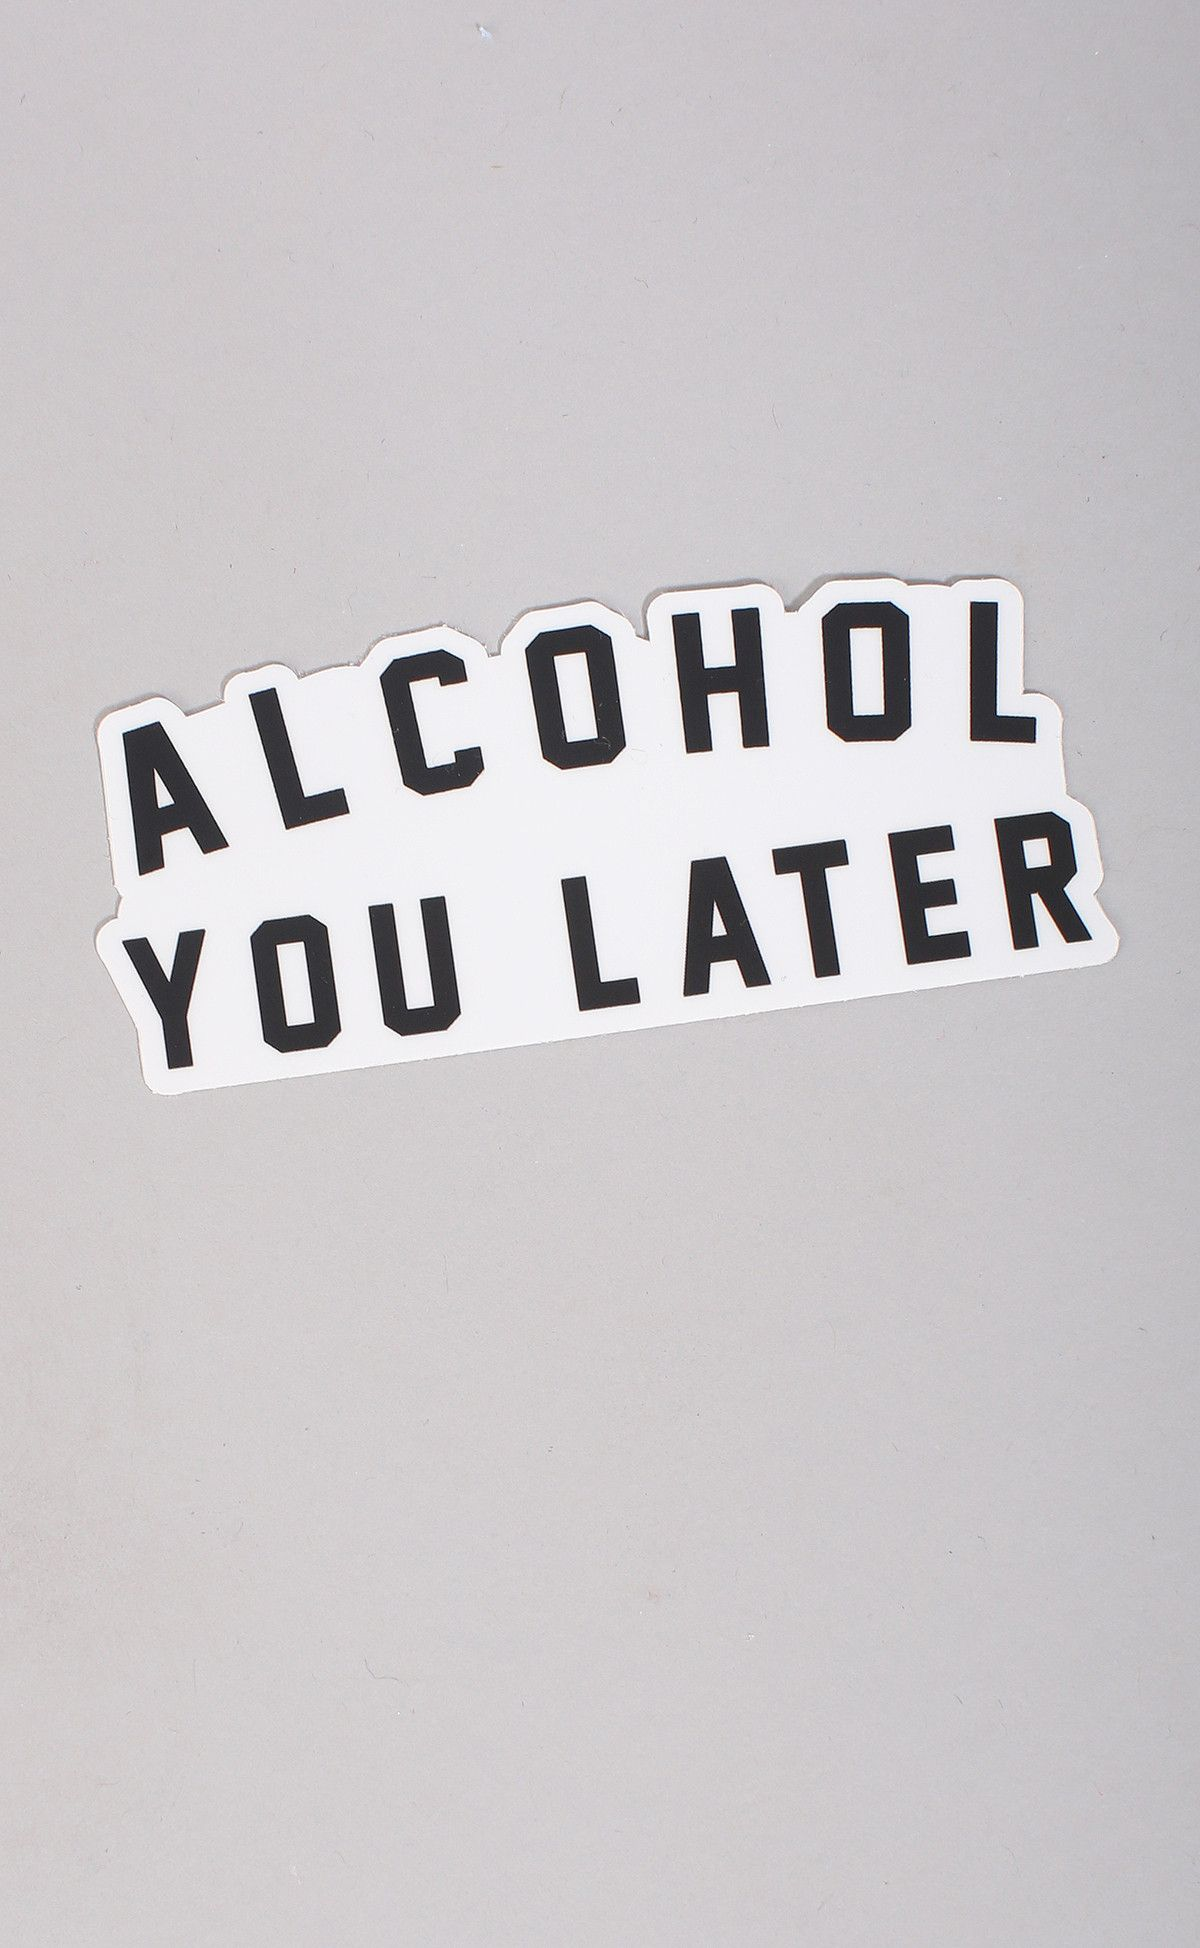 Alcohol You Later Stickers Edgy Quotes Clever Quotes Drinking Quotes